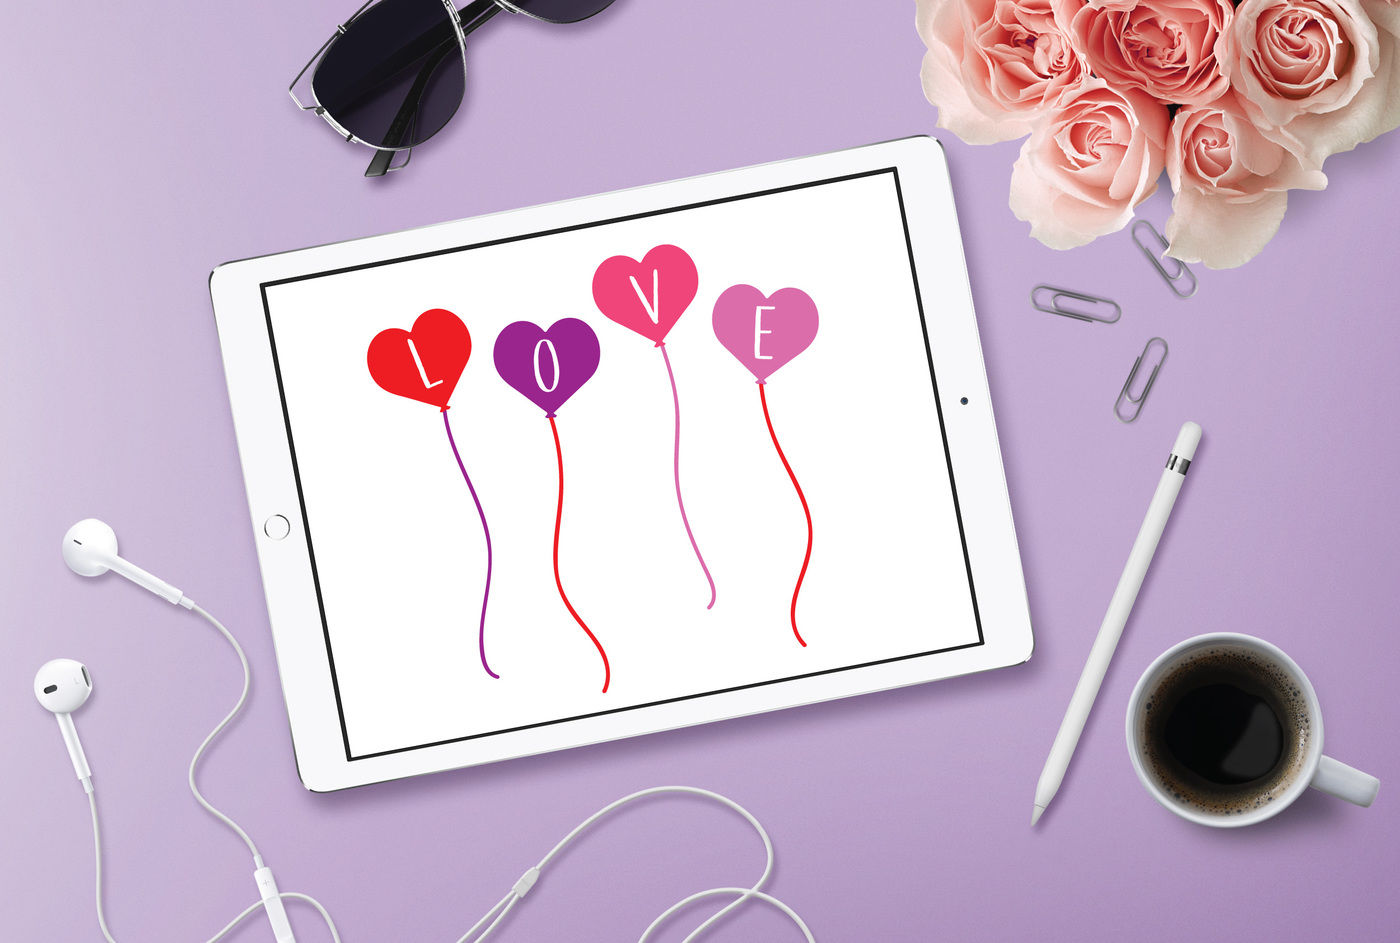 Love Balloons Svg Love Svg Dxf File Cuttable File By Bnr